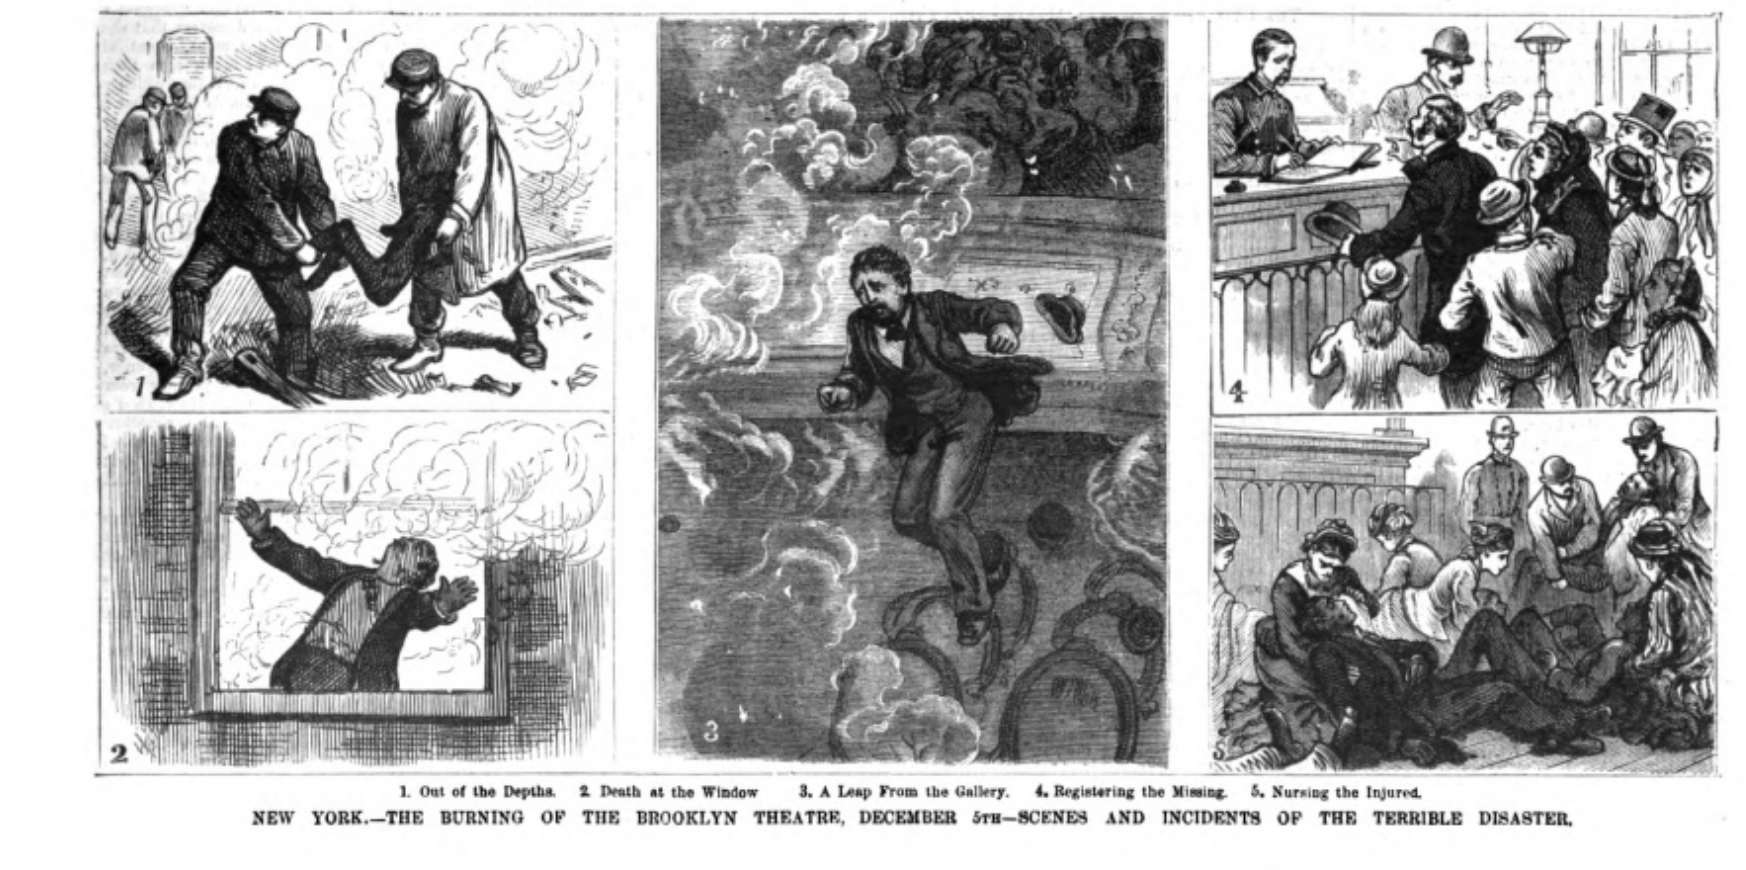 From Frank Leslie's Illustrated Newspaper